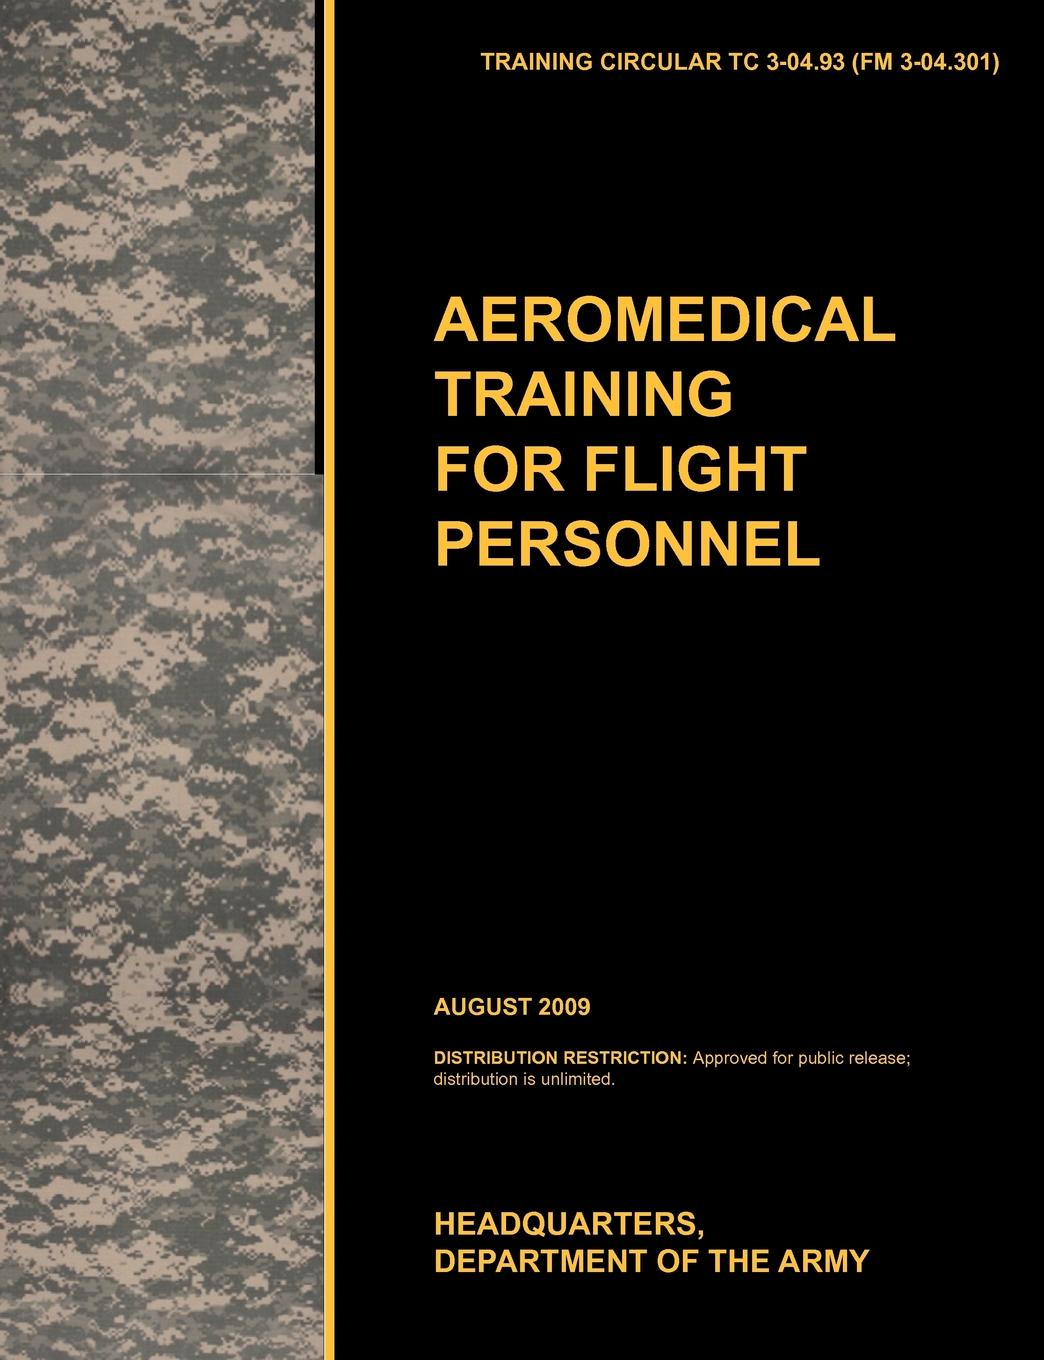 U. S. Army Training and Doctrine Command, Army School of Aviation Medicine, U. S. Department of the A Aeromedical Training for Flight Personnel us army military uniform for men training digital camouflage suit pilots parachuted outdoor summer training suit